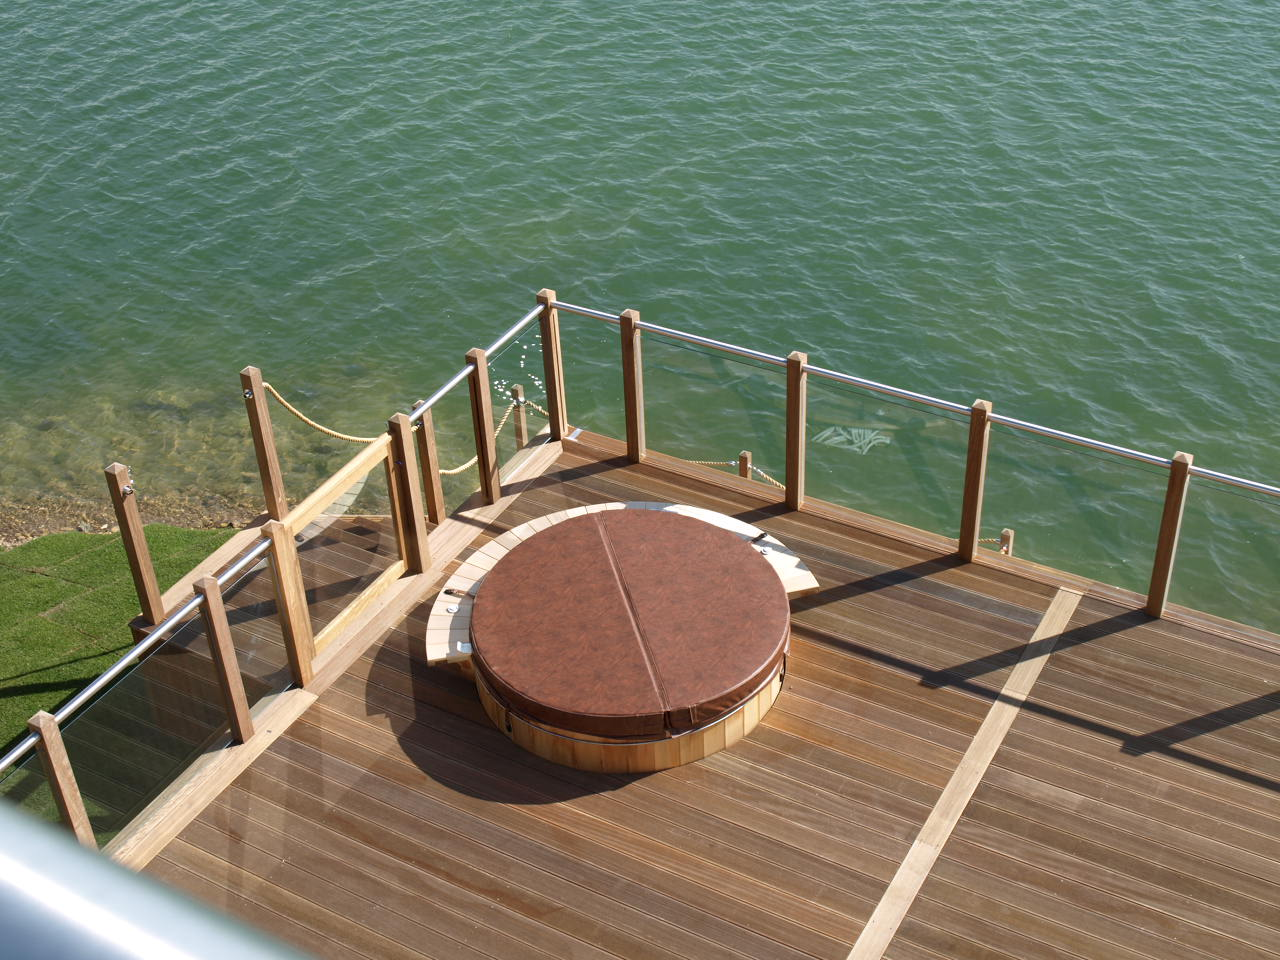 A picture taken from above of wooden decking surrounded by outdoor glass balustrades next to a lake